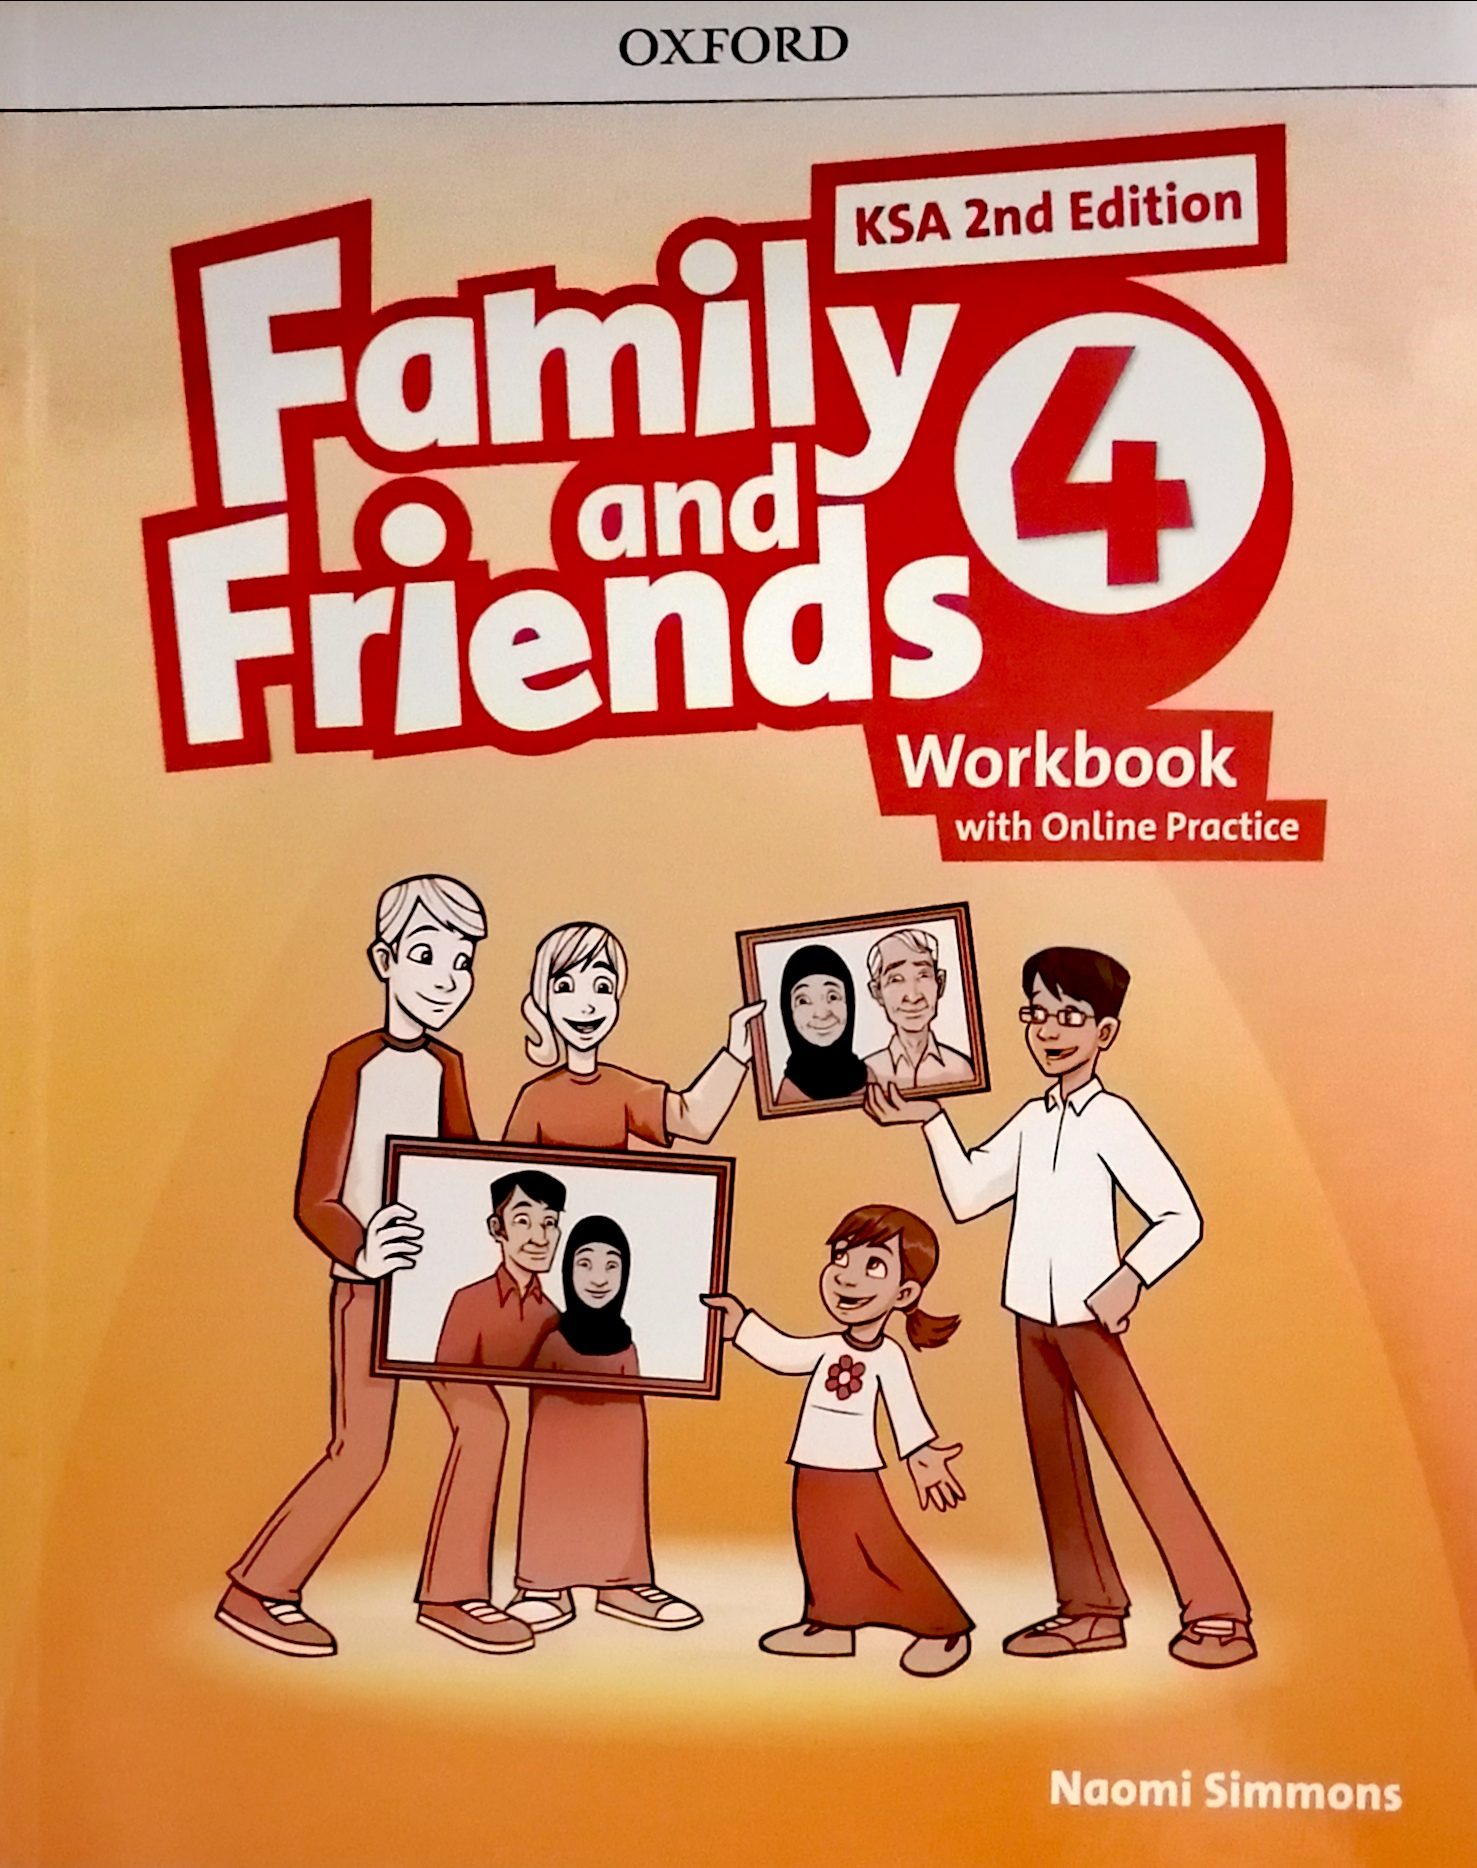 Family and Friends 4 (work)